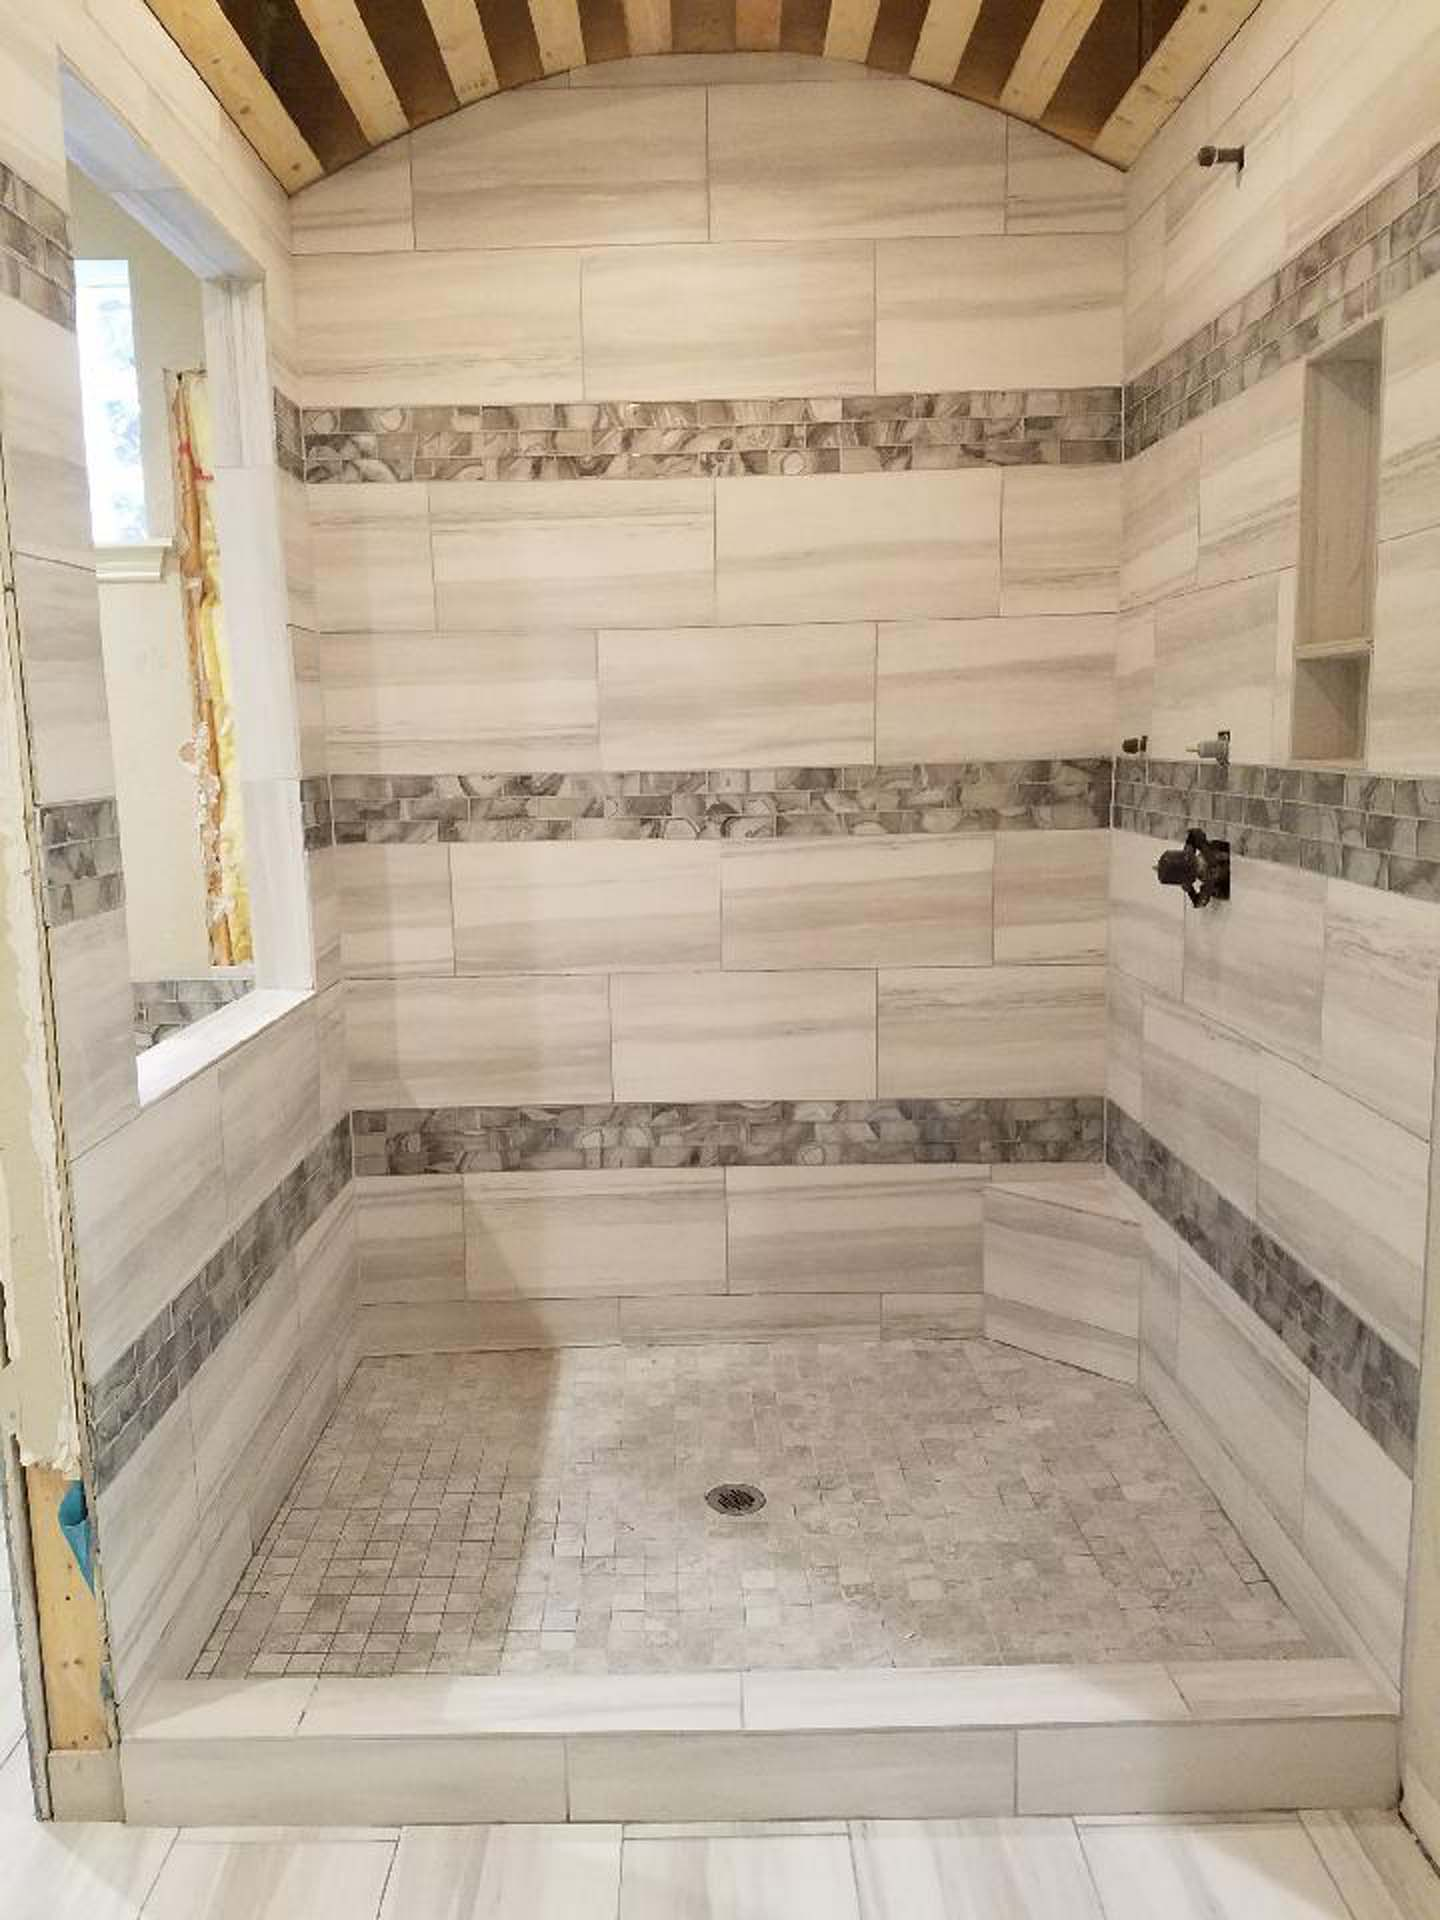 6 Designer Shower in progress